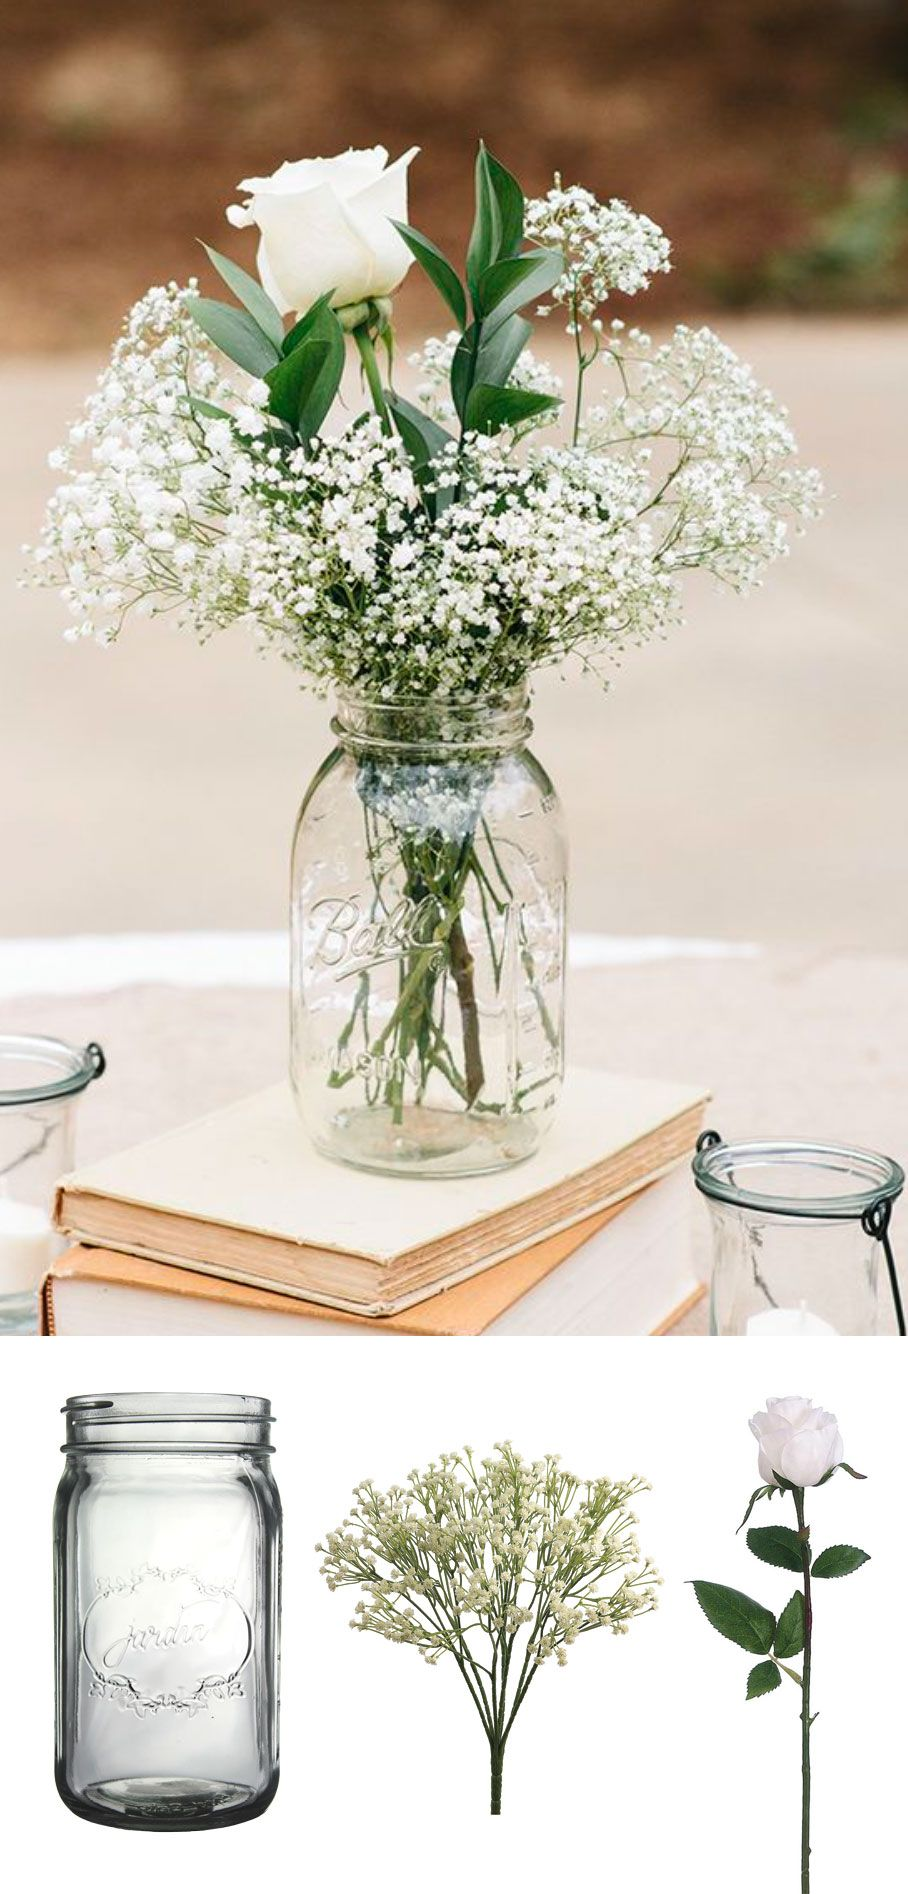 Make this simple diy vintage rustic centerpiece with mason